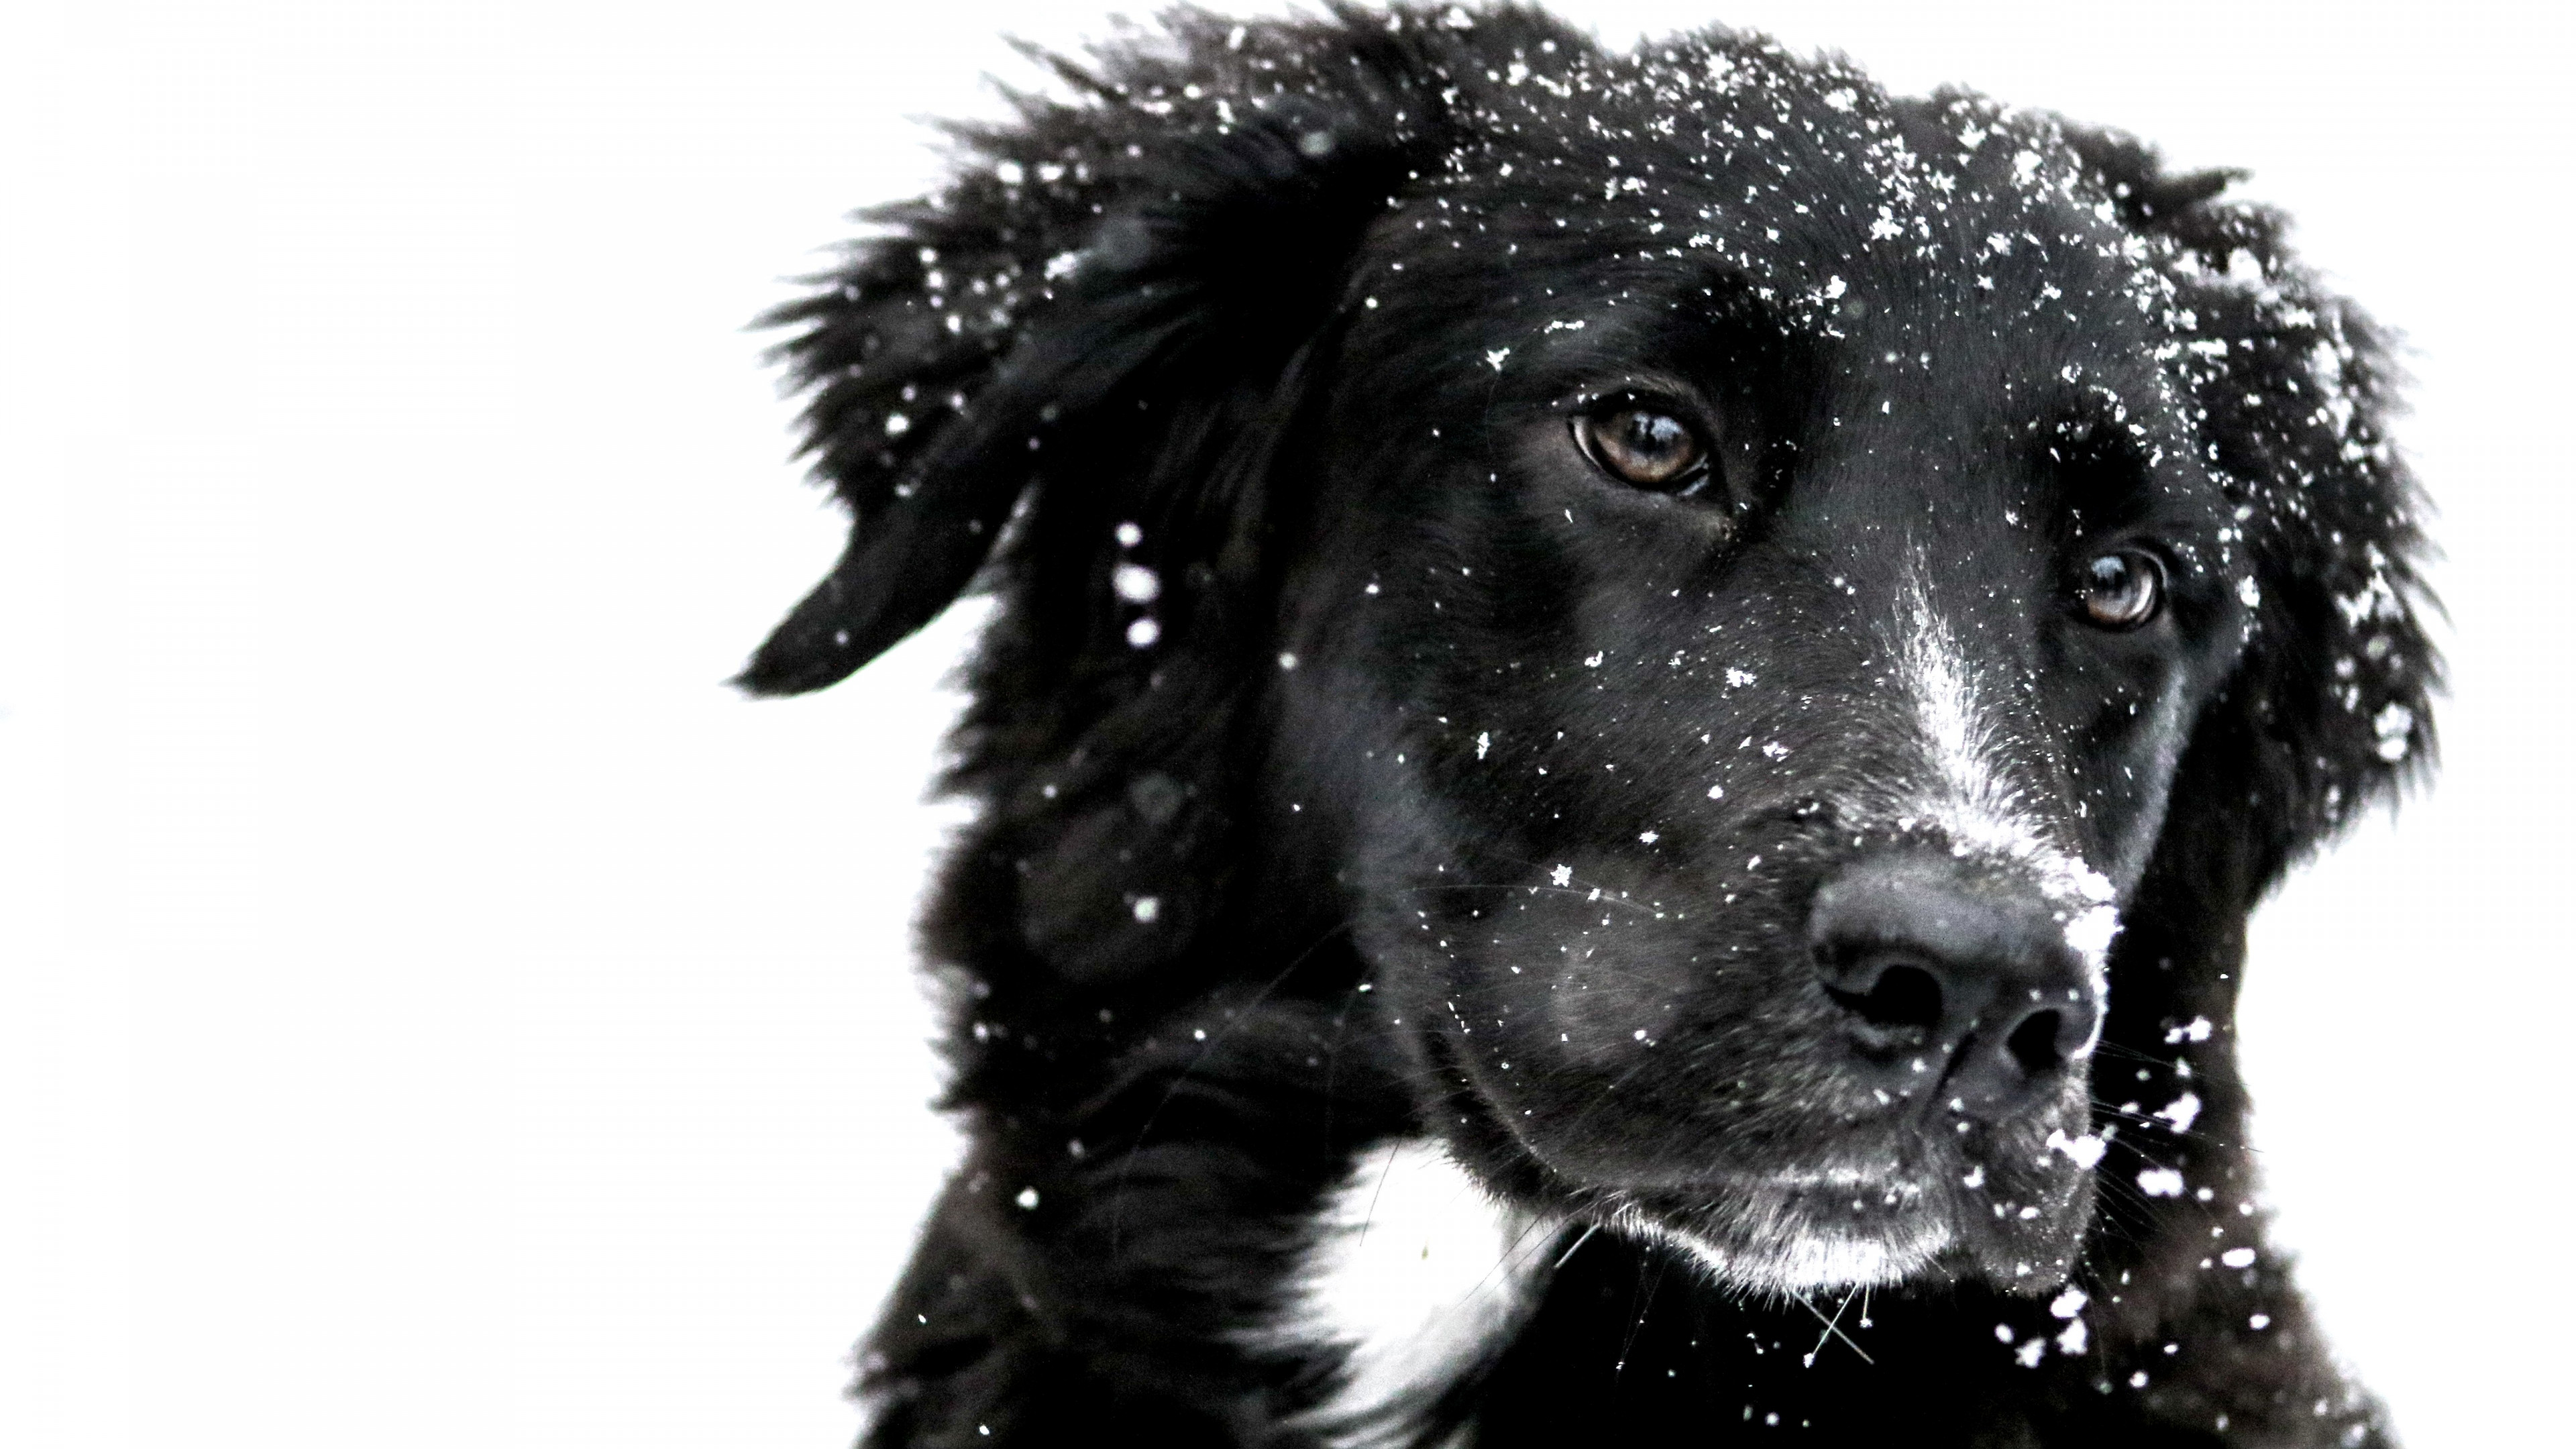 Snowing over the cute dog wallpaper 3840x2160